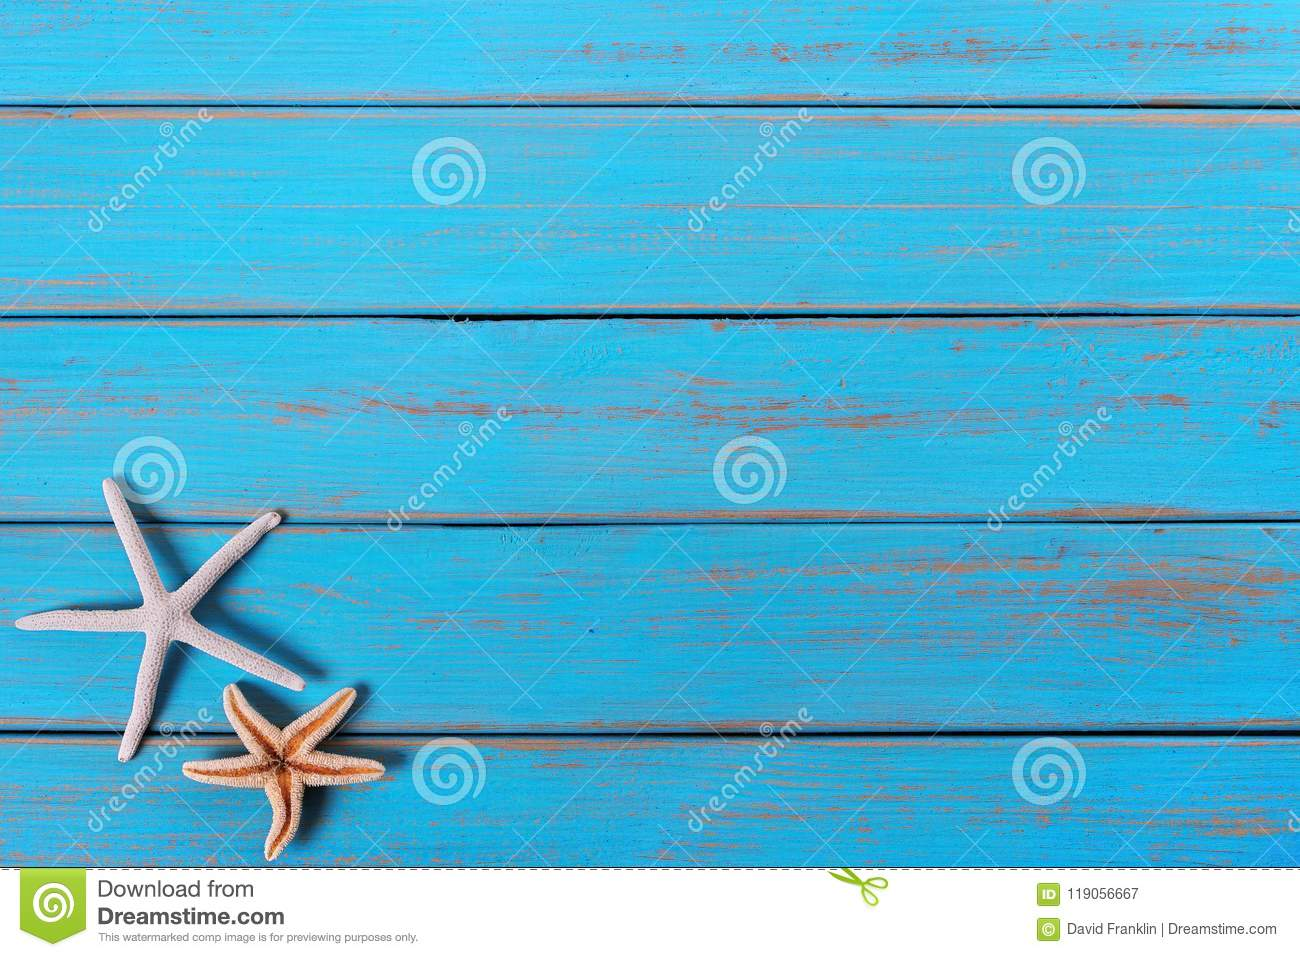 Starfish old weathered tropical blue beach wood deck background